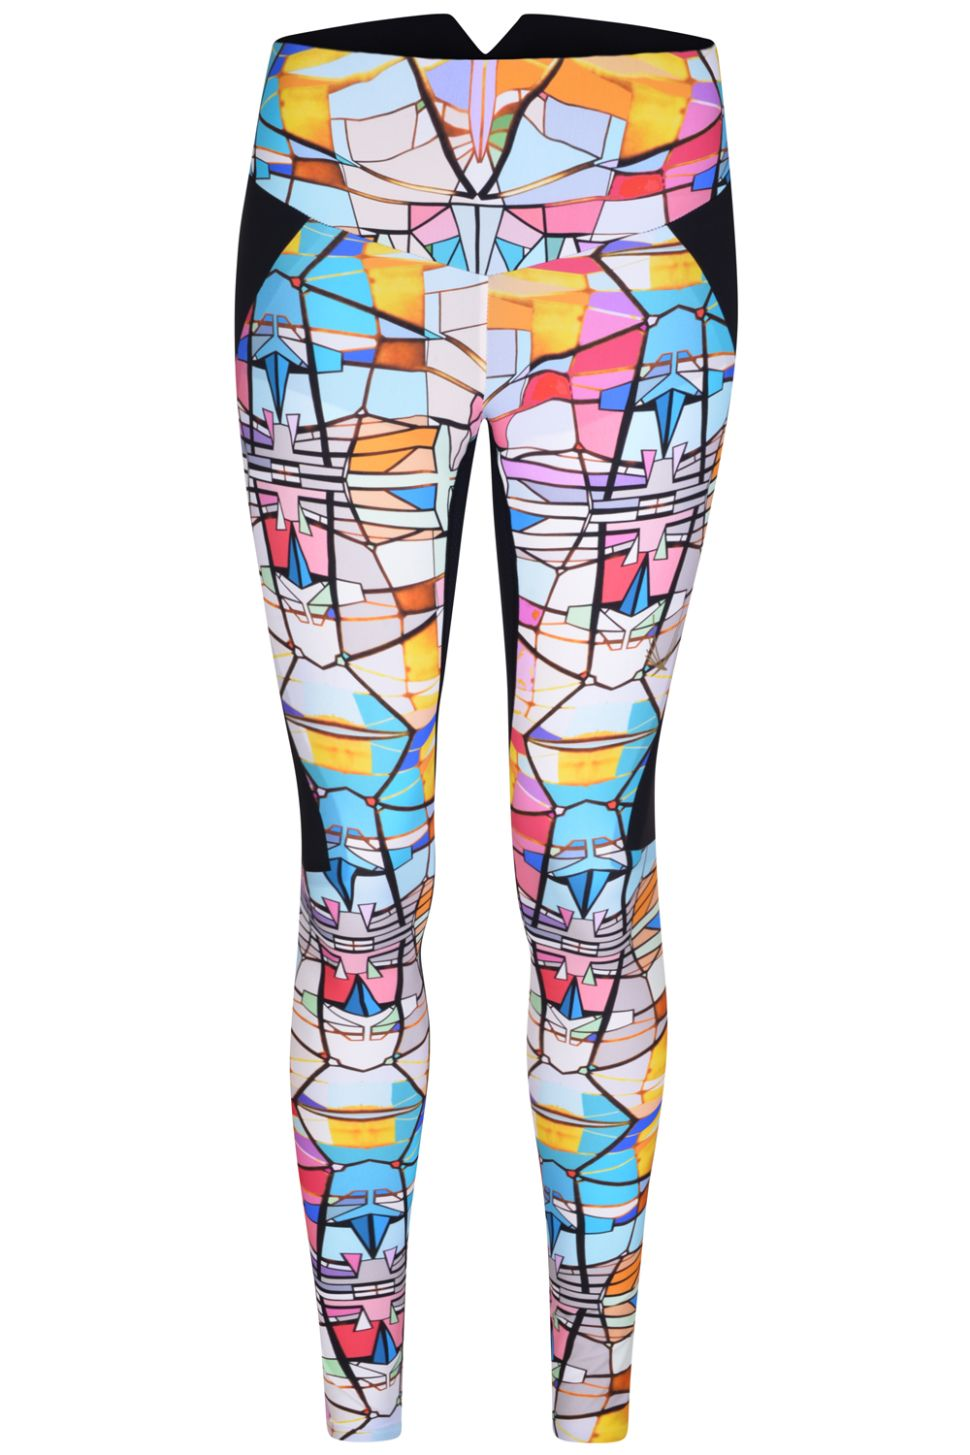 Stained-Glass Leggings Are Perfect for Those Who Work Out Religiously